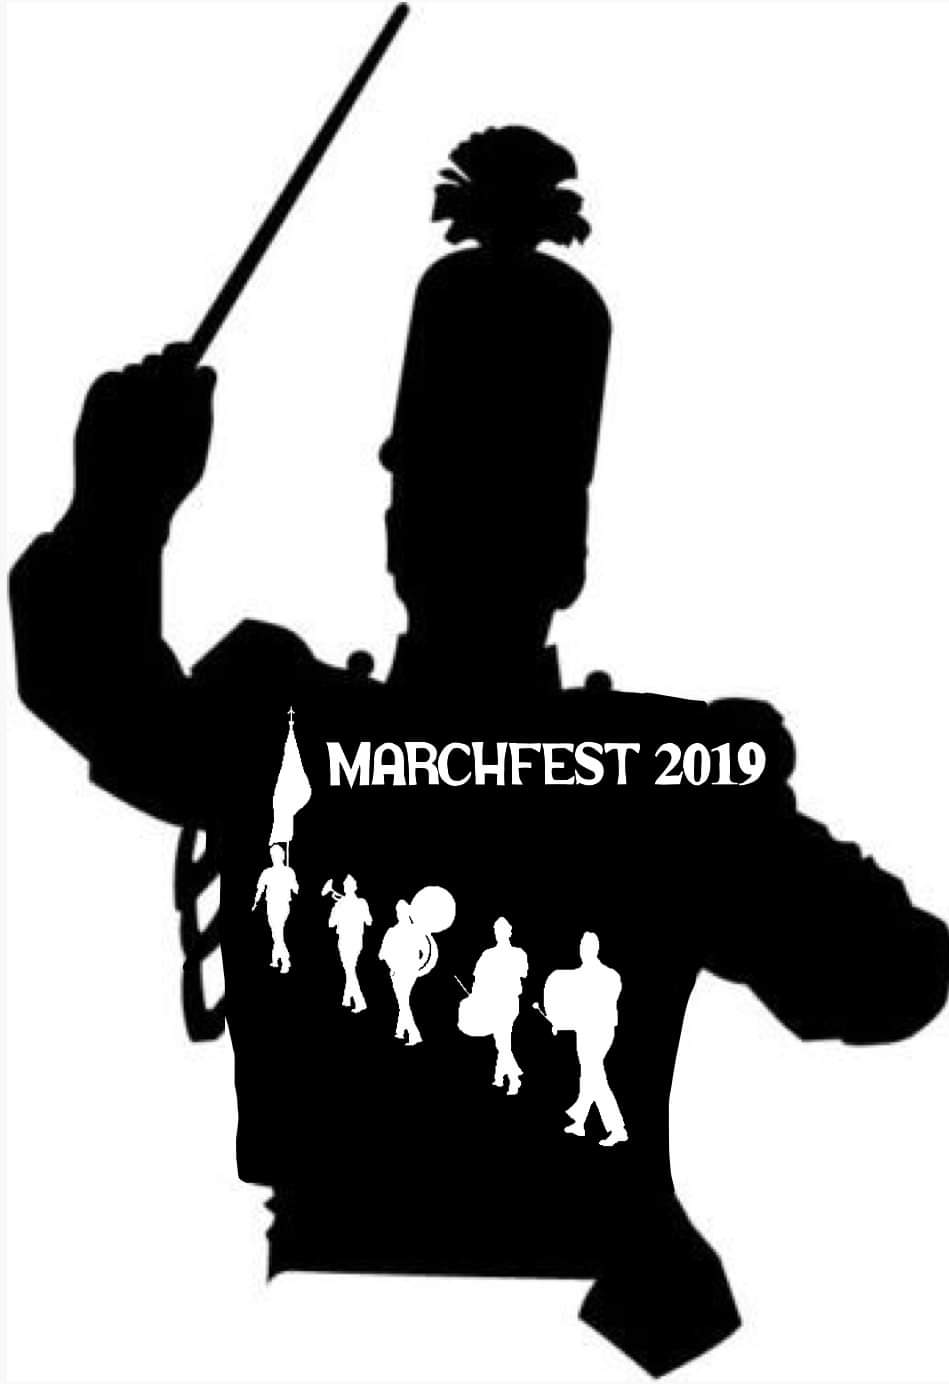 30th Annual Marchfest needs volunteers